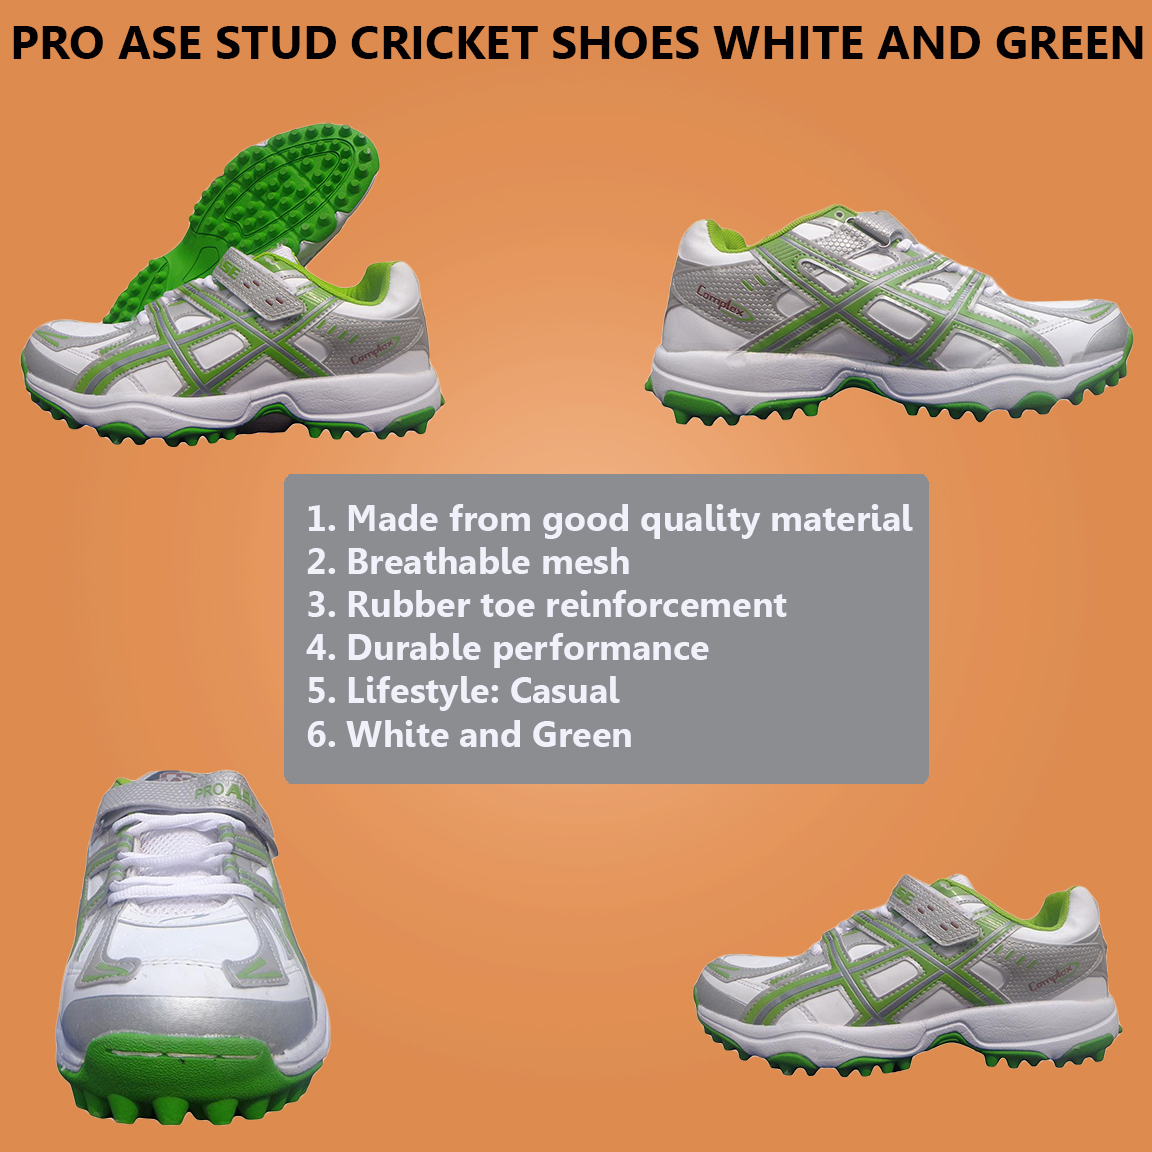 Pro Ase Stud Cricket Shoes White And Red